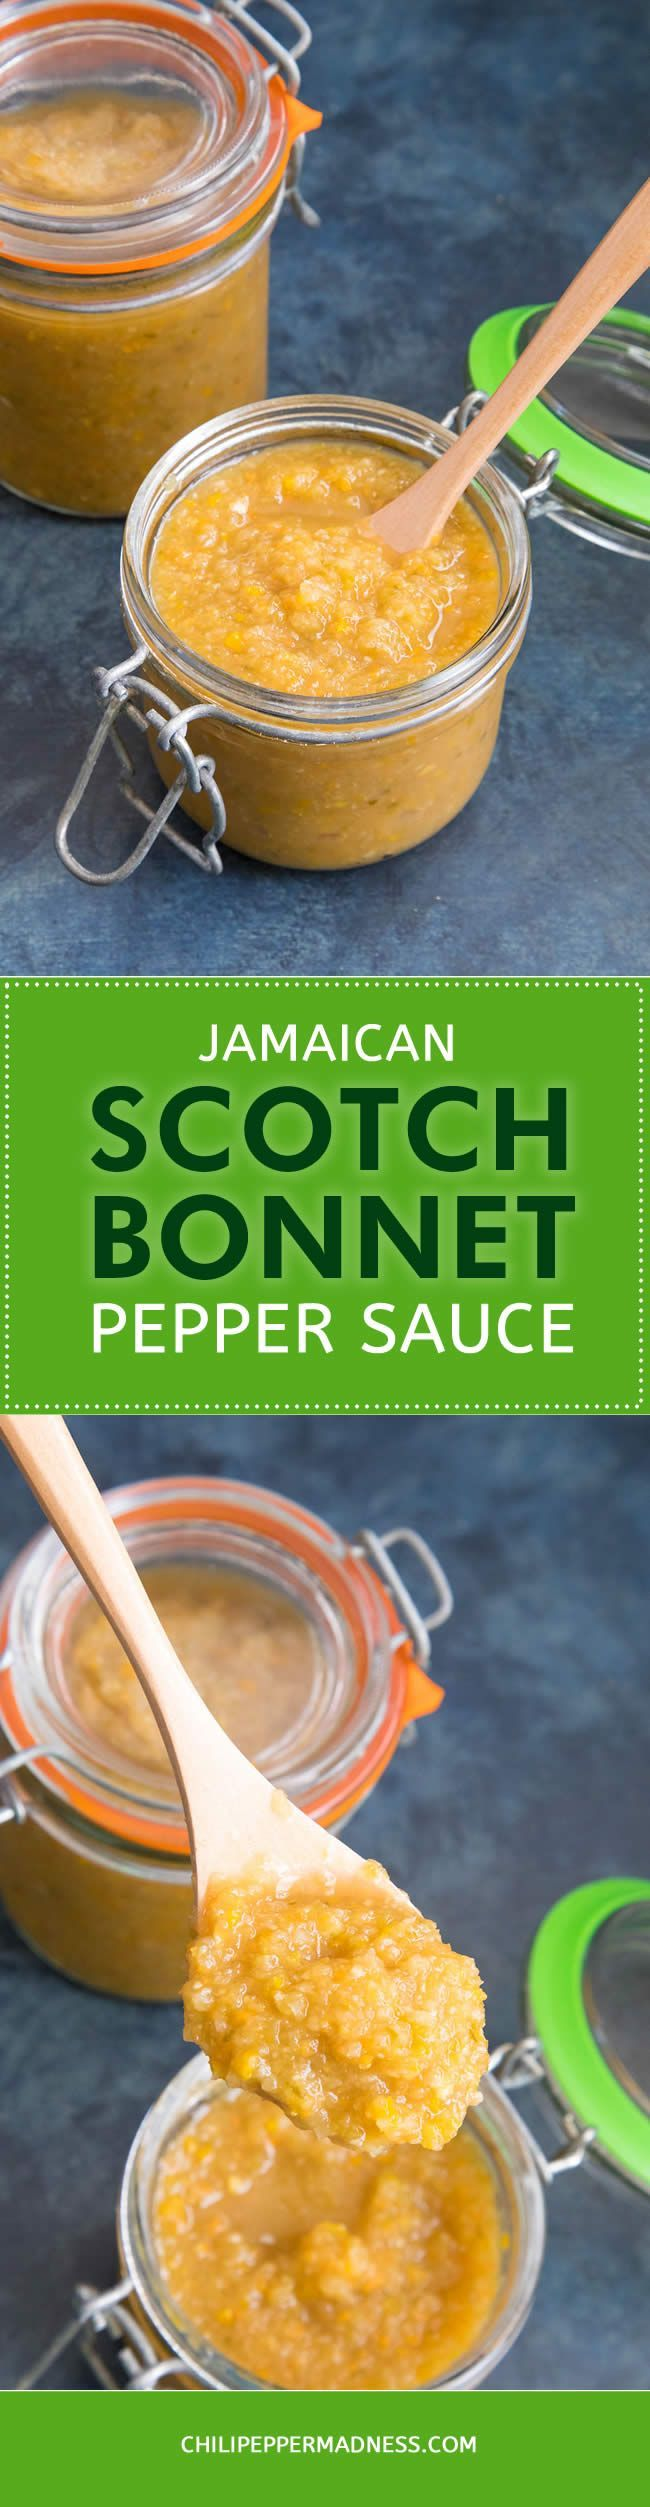 Jamaican Scotch Bonnet Pepper Sauce - Get this recipe for spicy pepper sauce made with fiery Scotch Bonnet peppers and a mix of Jamaican seasonings. Great for chicken and seafood.  #recipe #recipeoftheday #recipesharing #recipeideas #PepperSauce #HotSauce #Jamaican #spicy #spicyfood